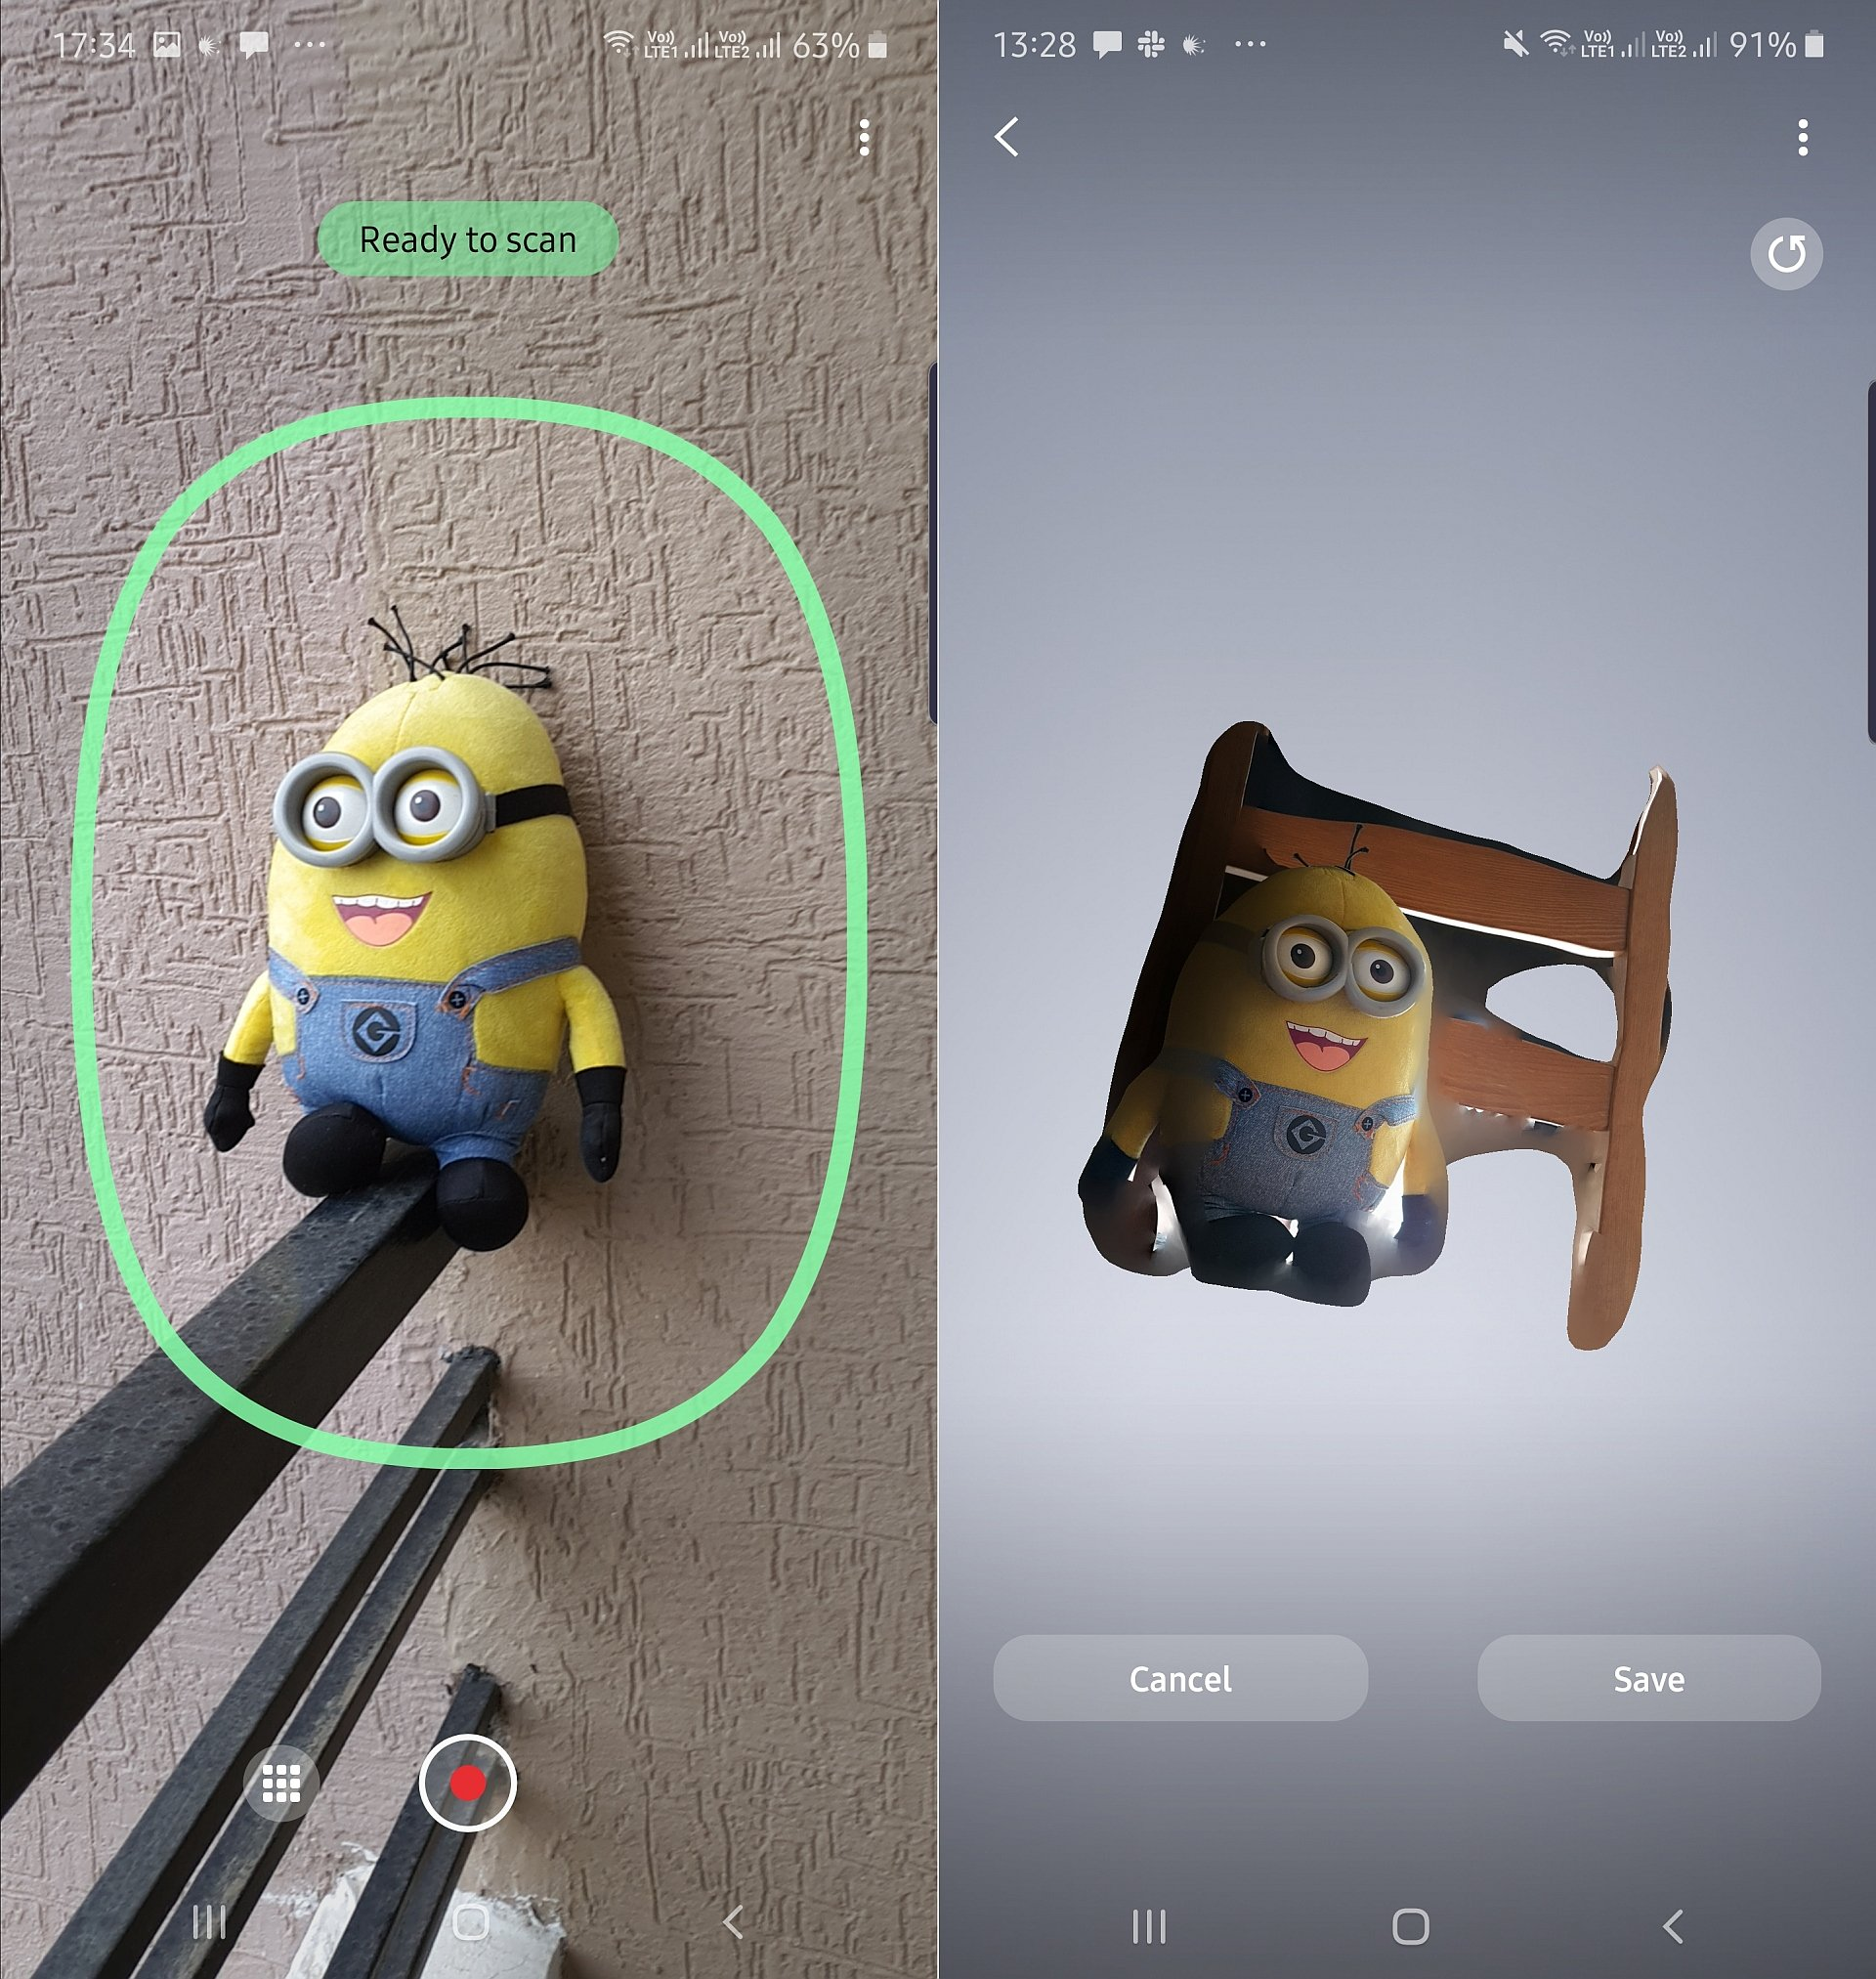 3d Scanner App >> Galaxy Note 10 3d Scanner App Now Available On The Galaxy